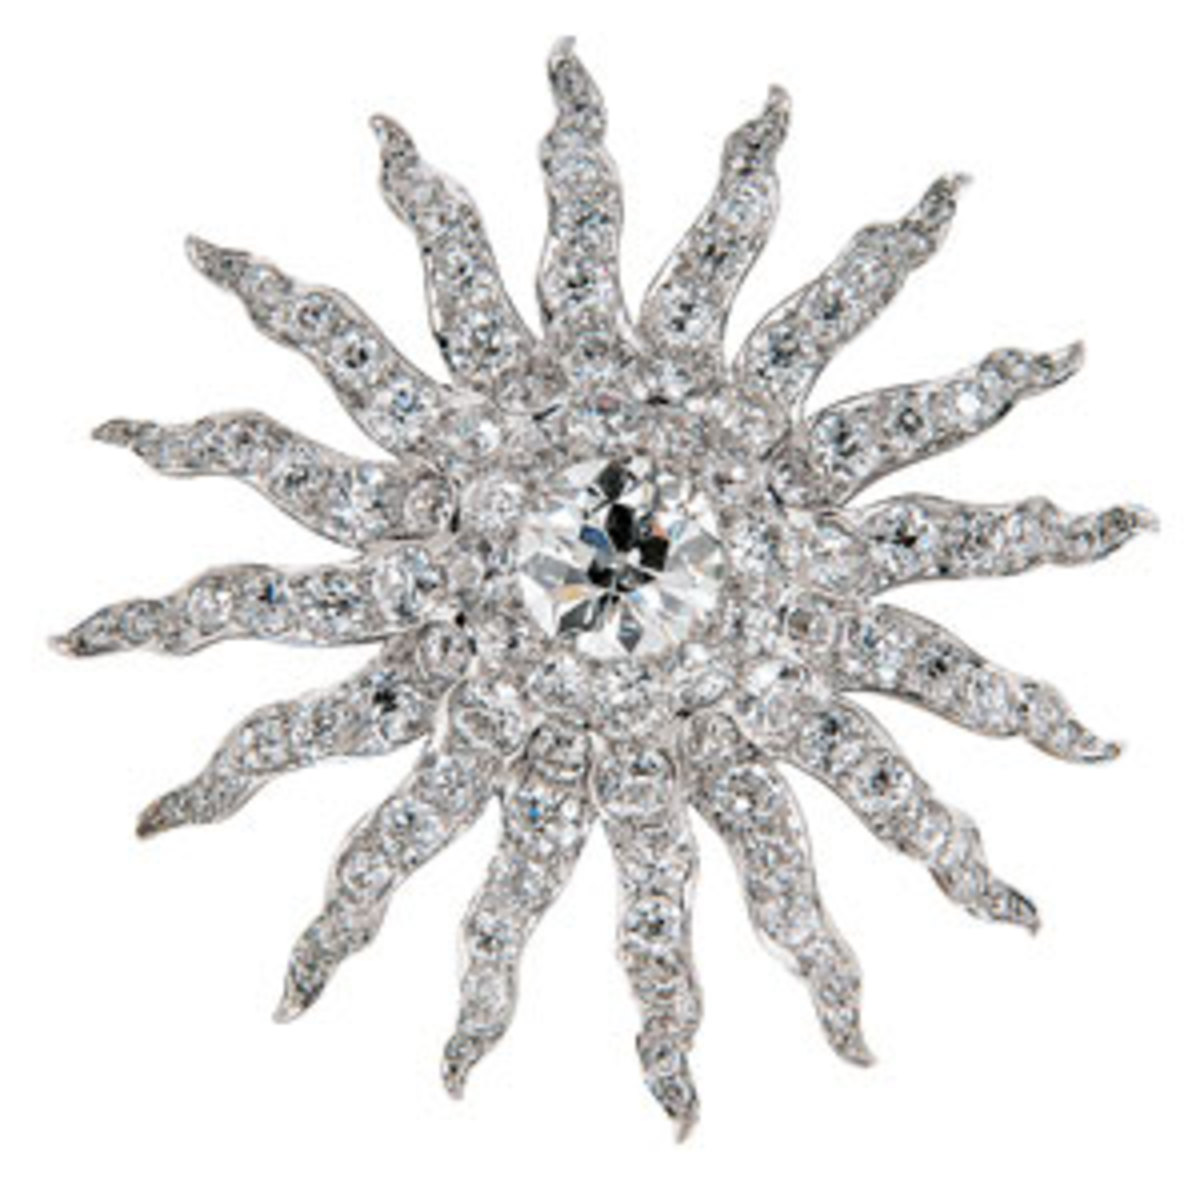 "Antique diamond sunburst brooch, Howard & Co., late 19th century, centering an old European-cut diamond weighing approx. 6.25 cts., and old European- and old mine-cut diamonds, approx. total wt. 21.25 cts., platinum-topped gold mount, 2-5/8"" l, signed, in original fitted box. Estimate $30,000-$50,000. Provenance: Descended in the family of Mrs. Hope Goddard Iselin of New York and Newport, from her mother, Mary Edith Jenckes Goddard. Mrs. Iselin was an avid horsewoman, golfer and accomplished sailor who competed on an international level."